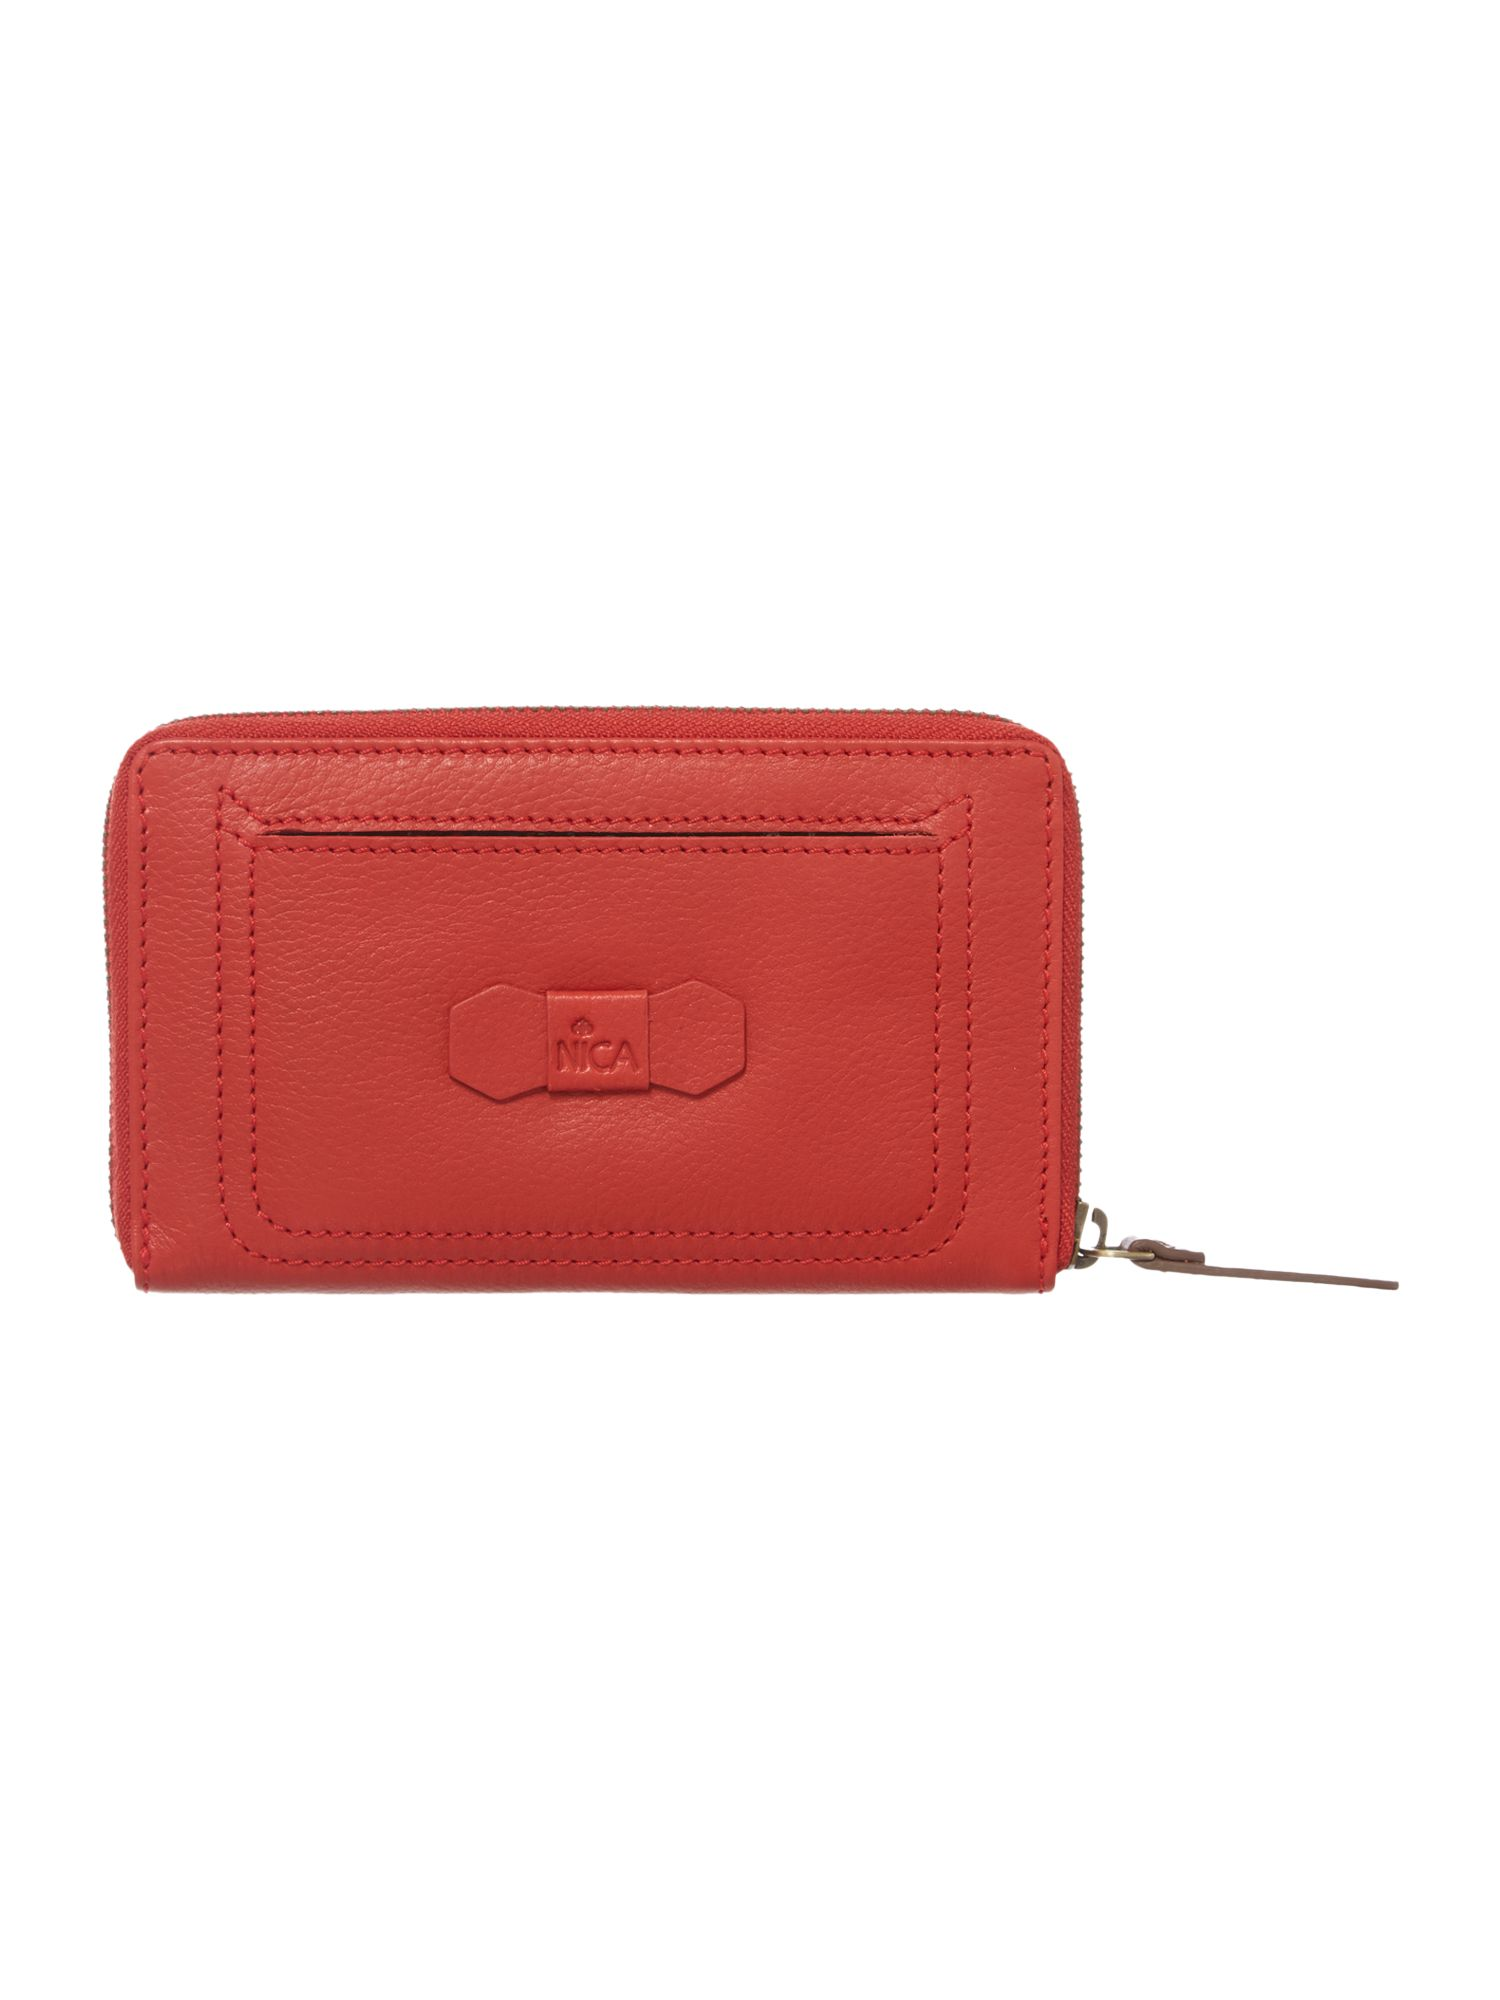 Nikki red large zip around purse